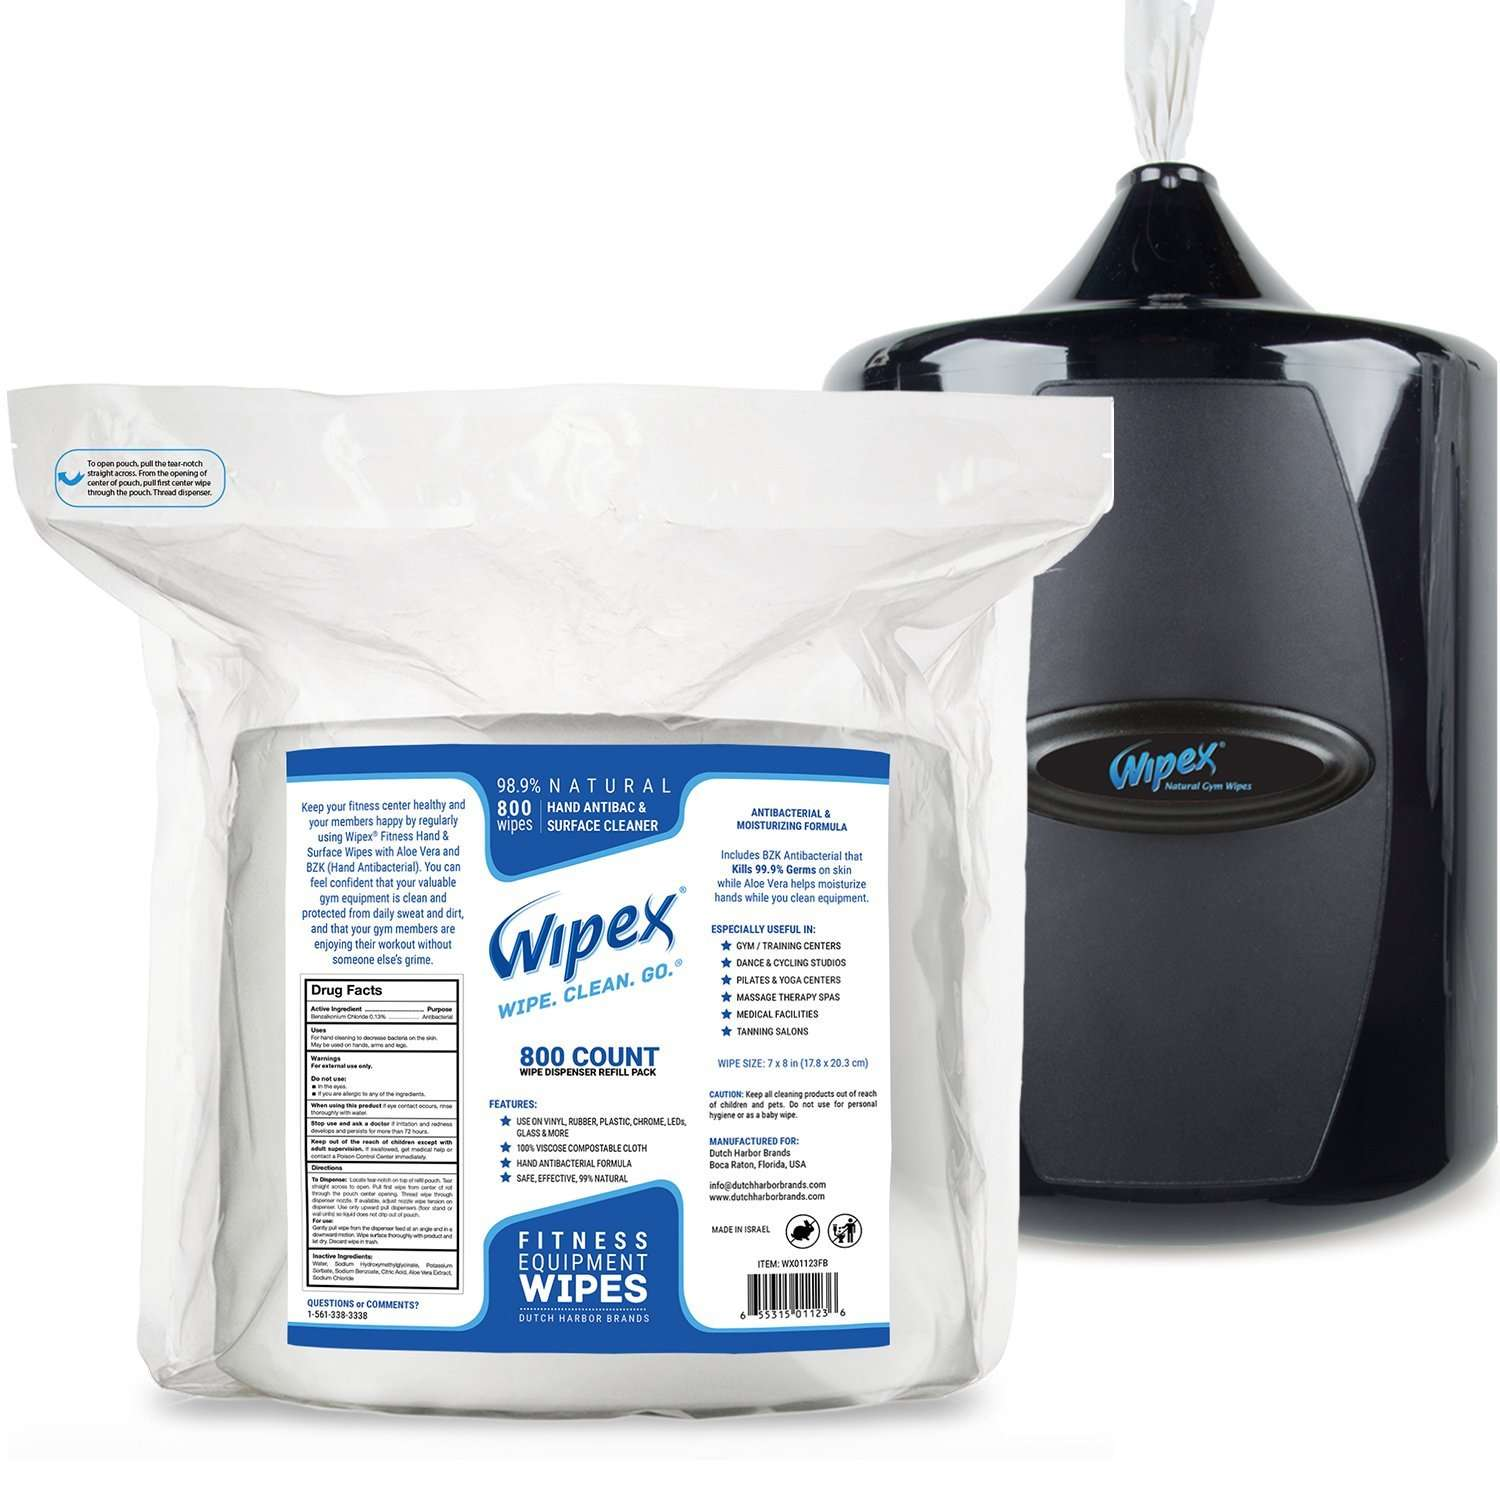 Wipex Gym & Fitness Equipment Wipes with Canister